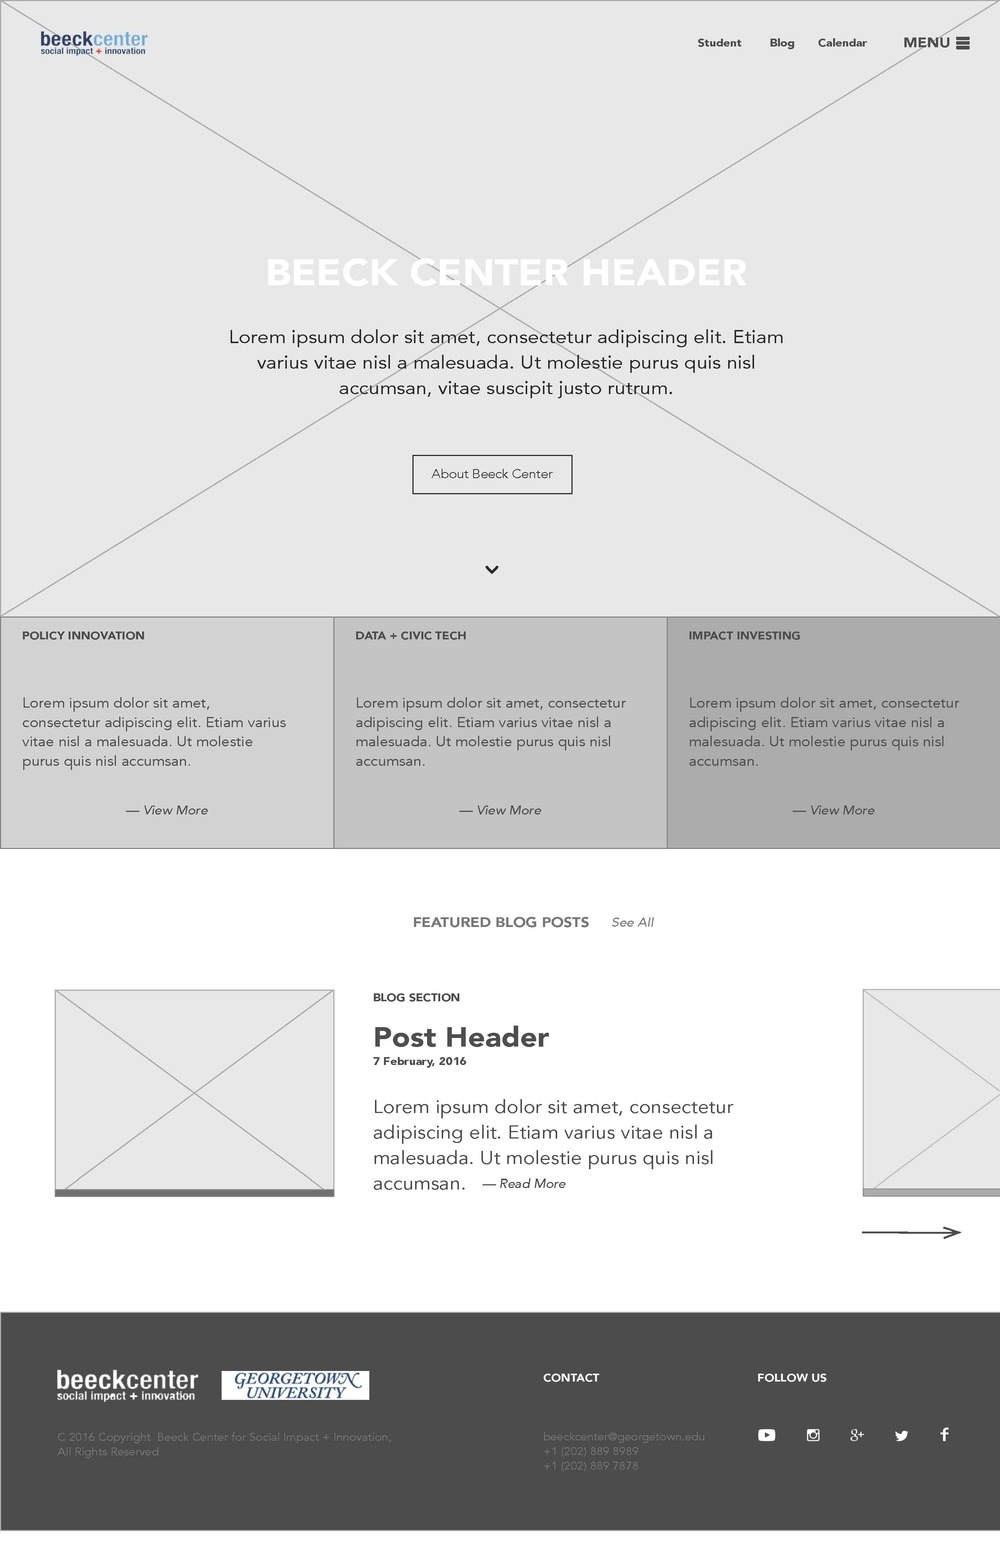 The Beeck Center website wireframes